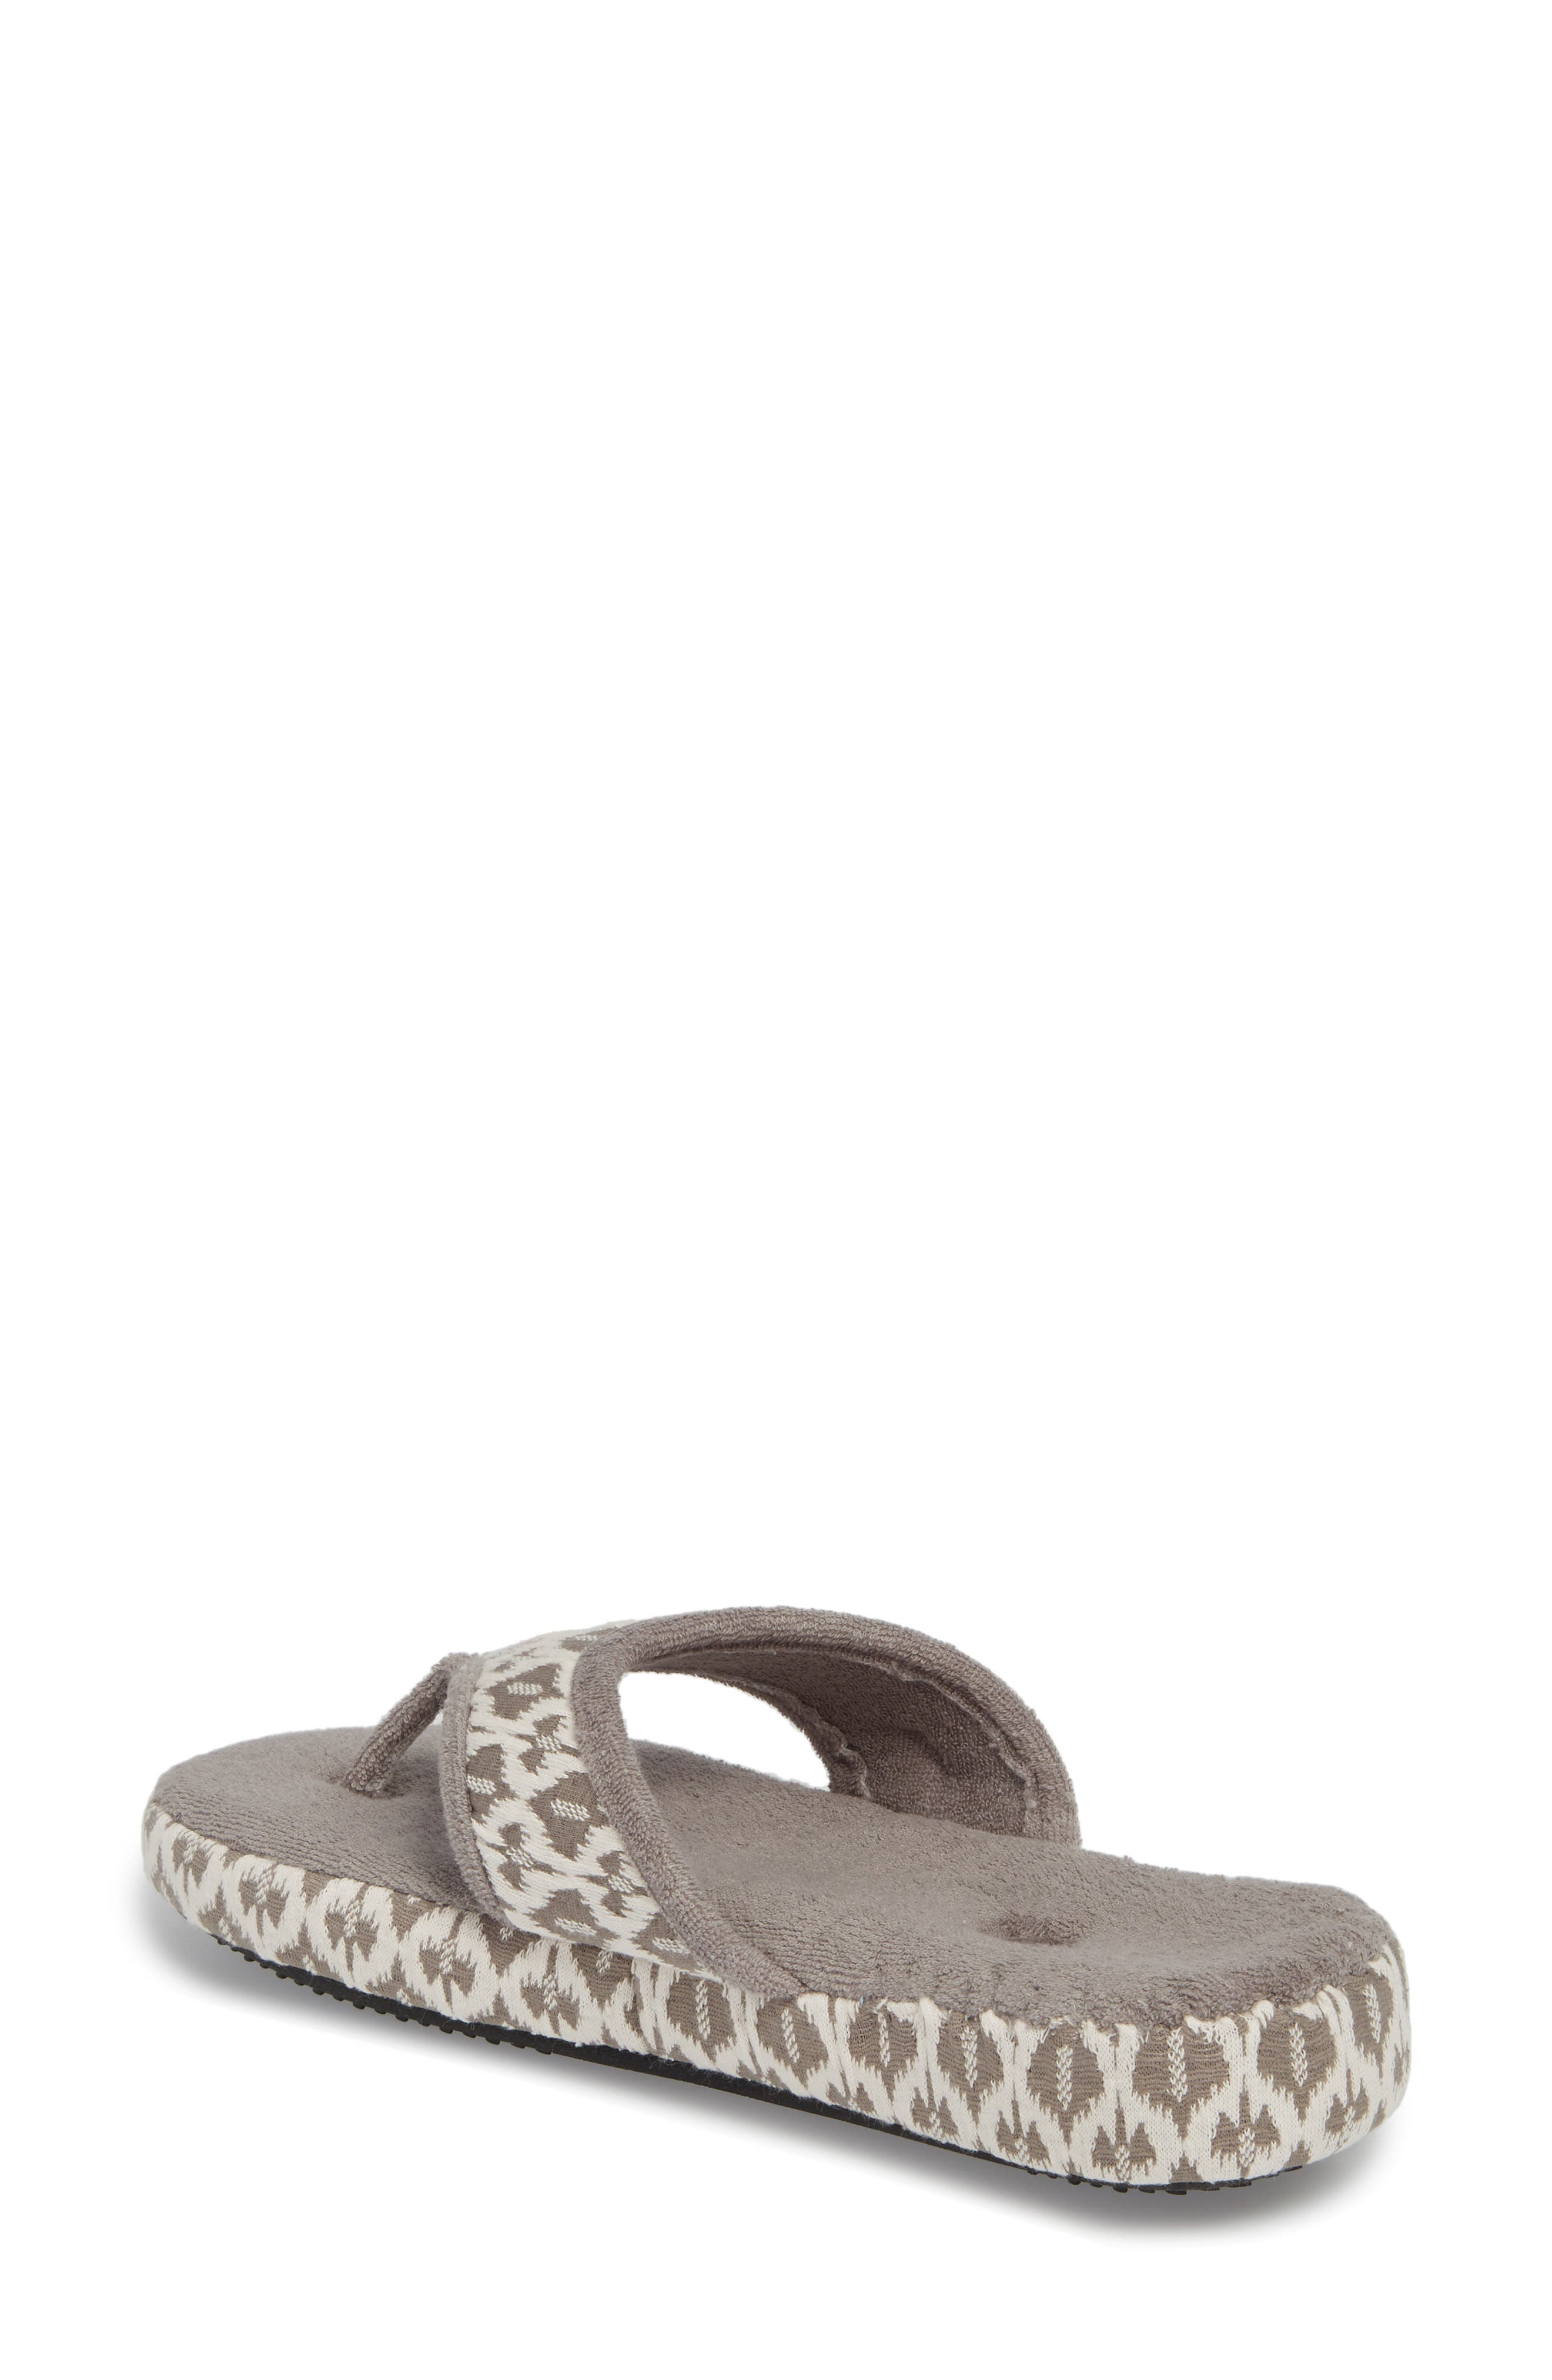 'Summerweight' Slipper,                             Alternate thumbnail 2, color,                             ASH TRIBAL